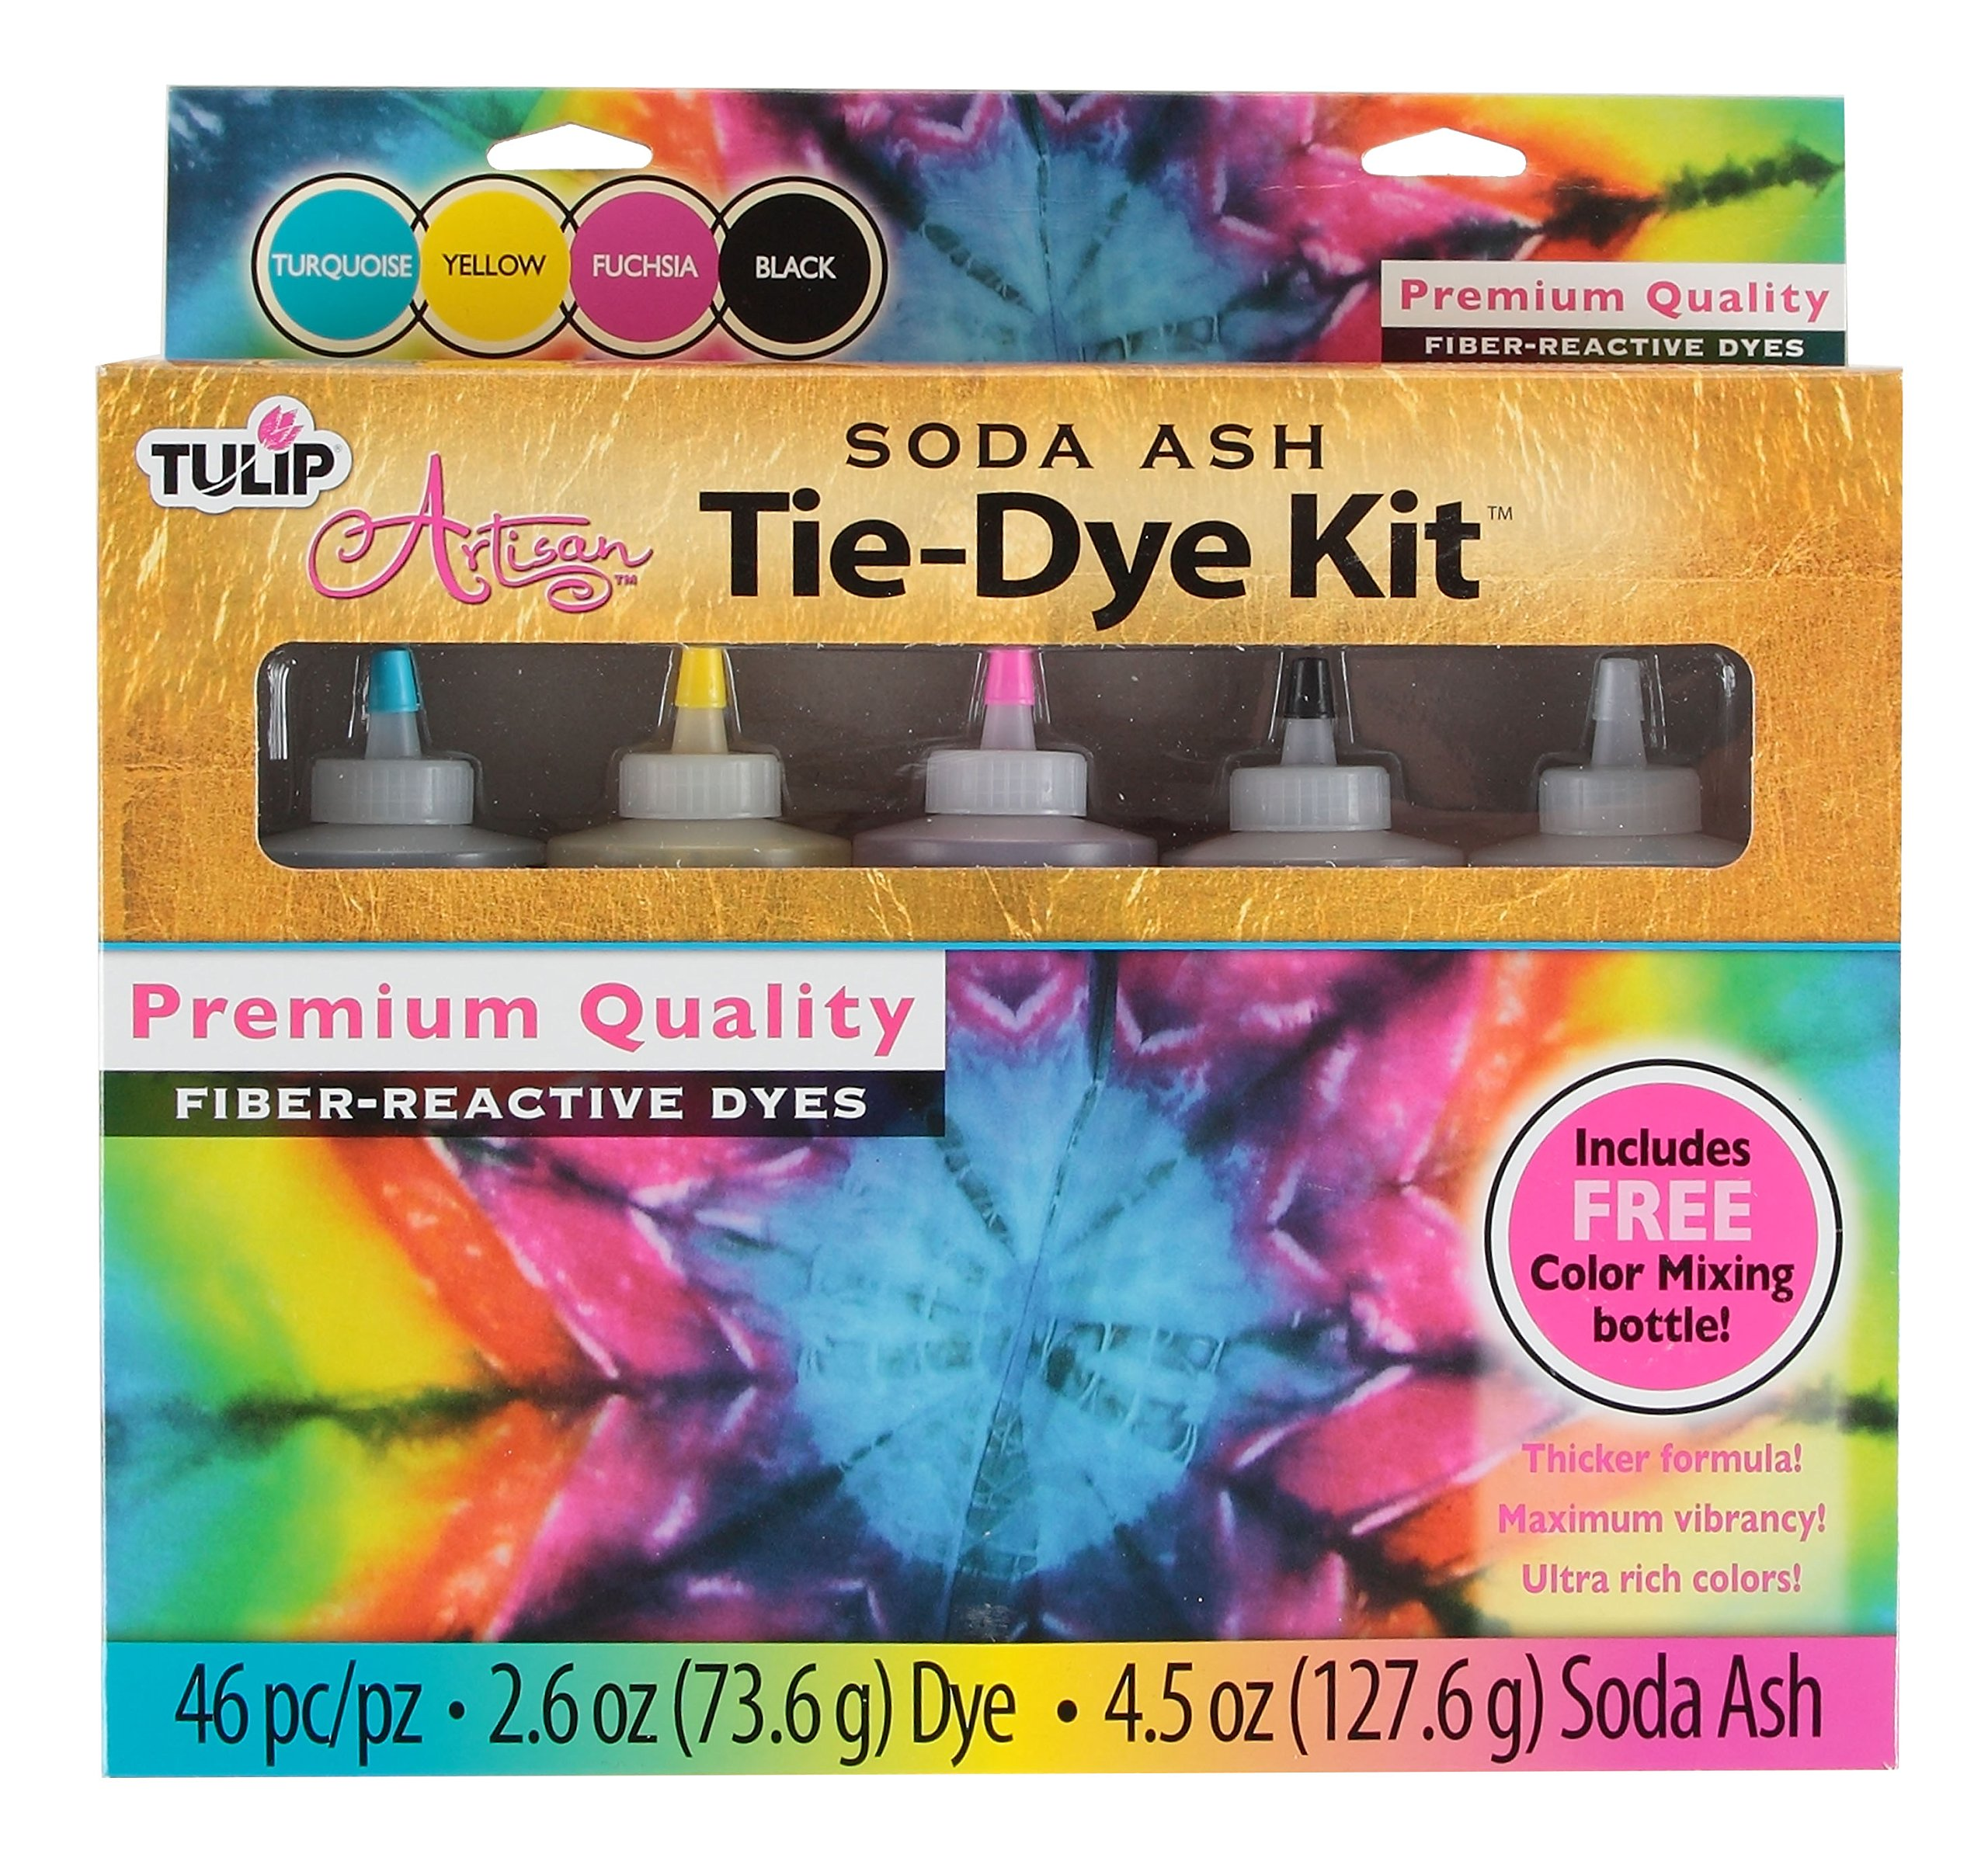 Tulip Artisan Soda Ash Tie-Dye Kit with Color Mixing Bottle